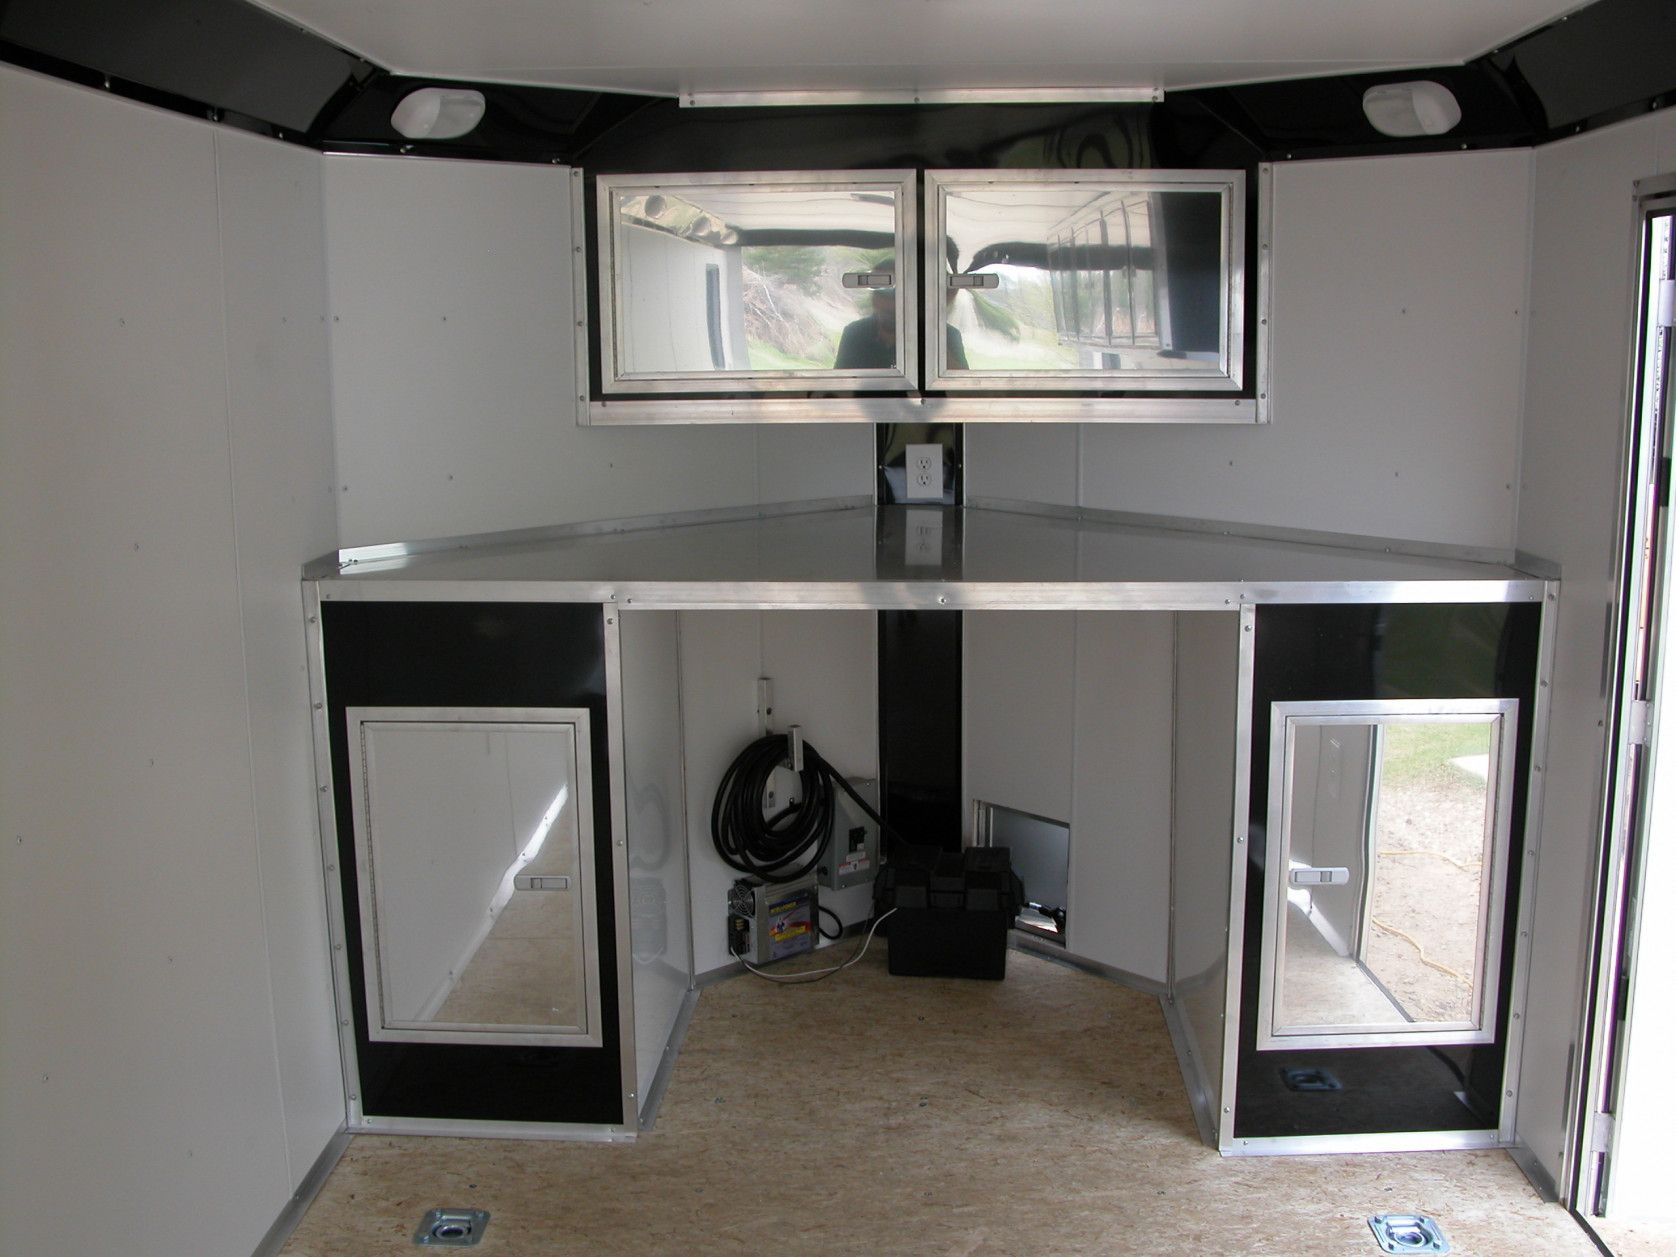 Cargo Trailer Accessories >> Pin By Rahayu12 On Interior Analogi Enclosed Trailer Cabinets